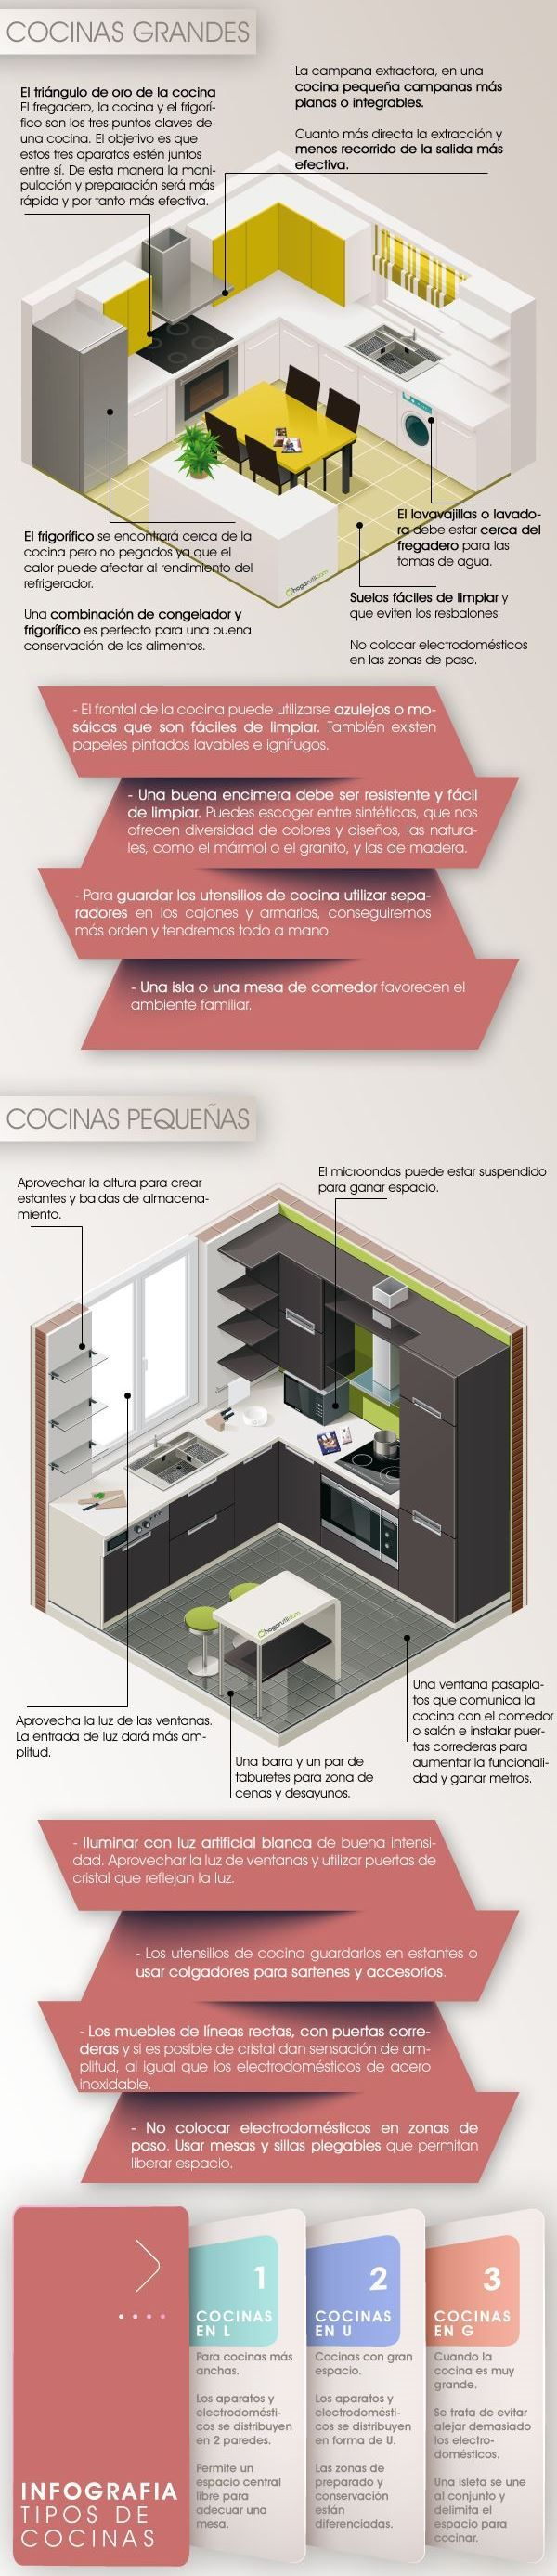 46 best COCINAS images on Pinterest | Kitchen ideas, Kitchens and ...